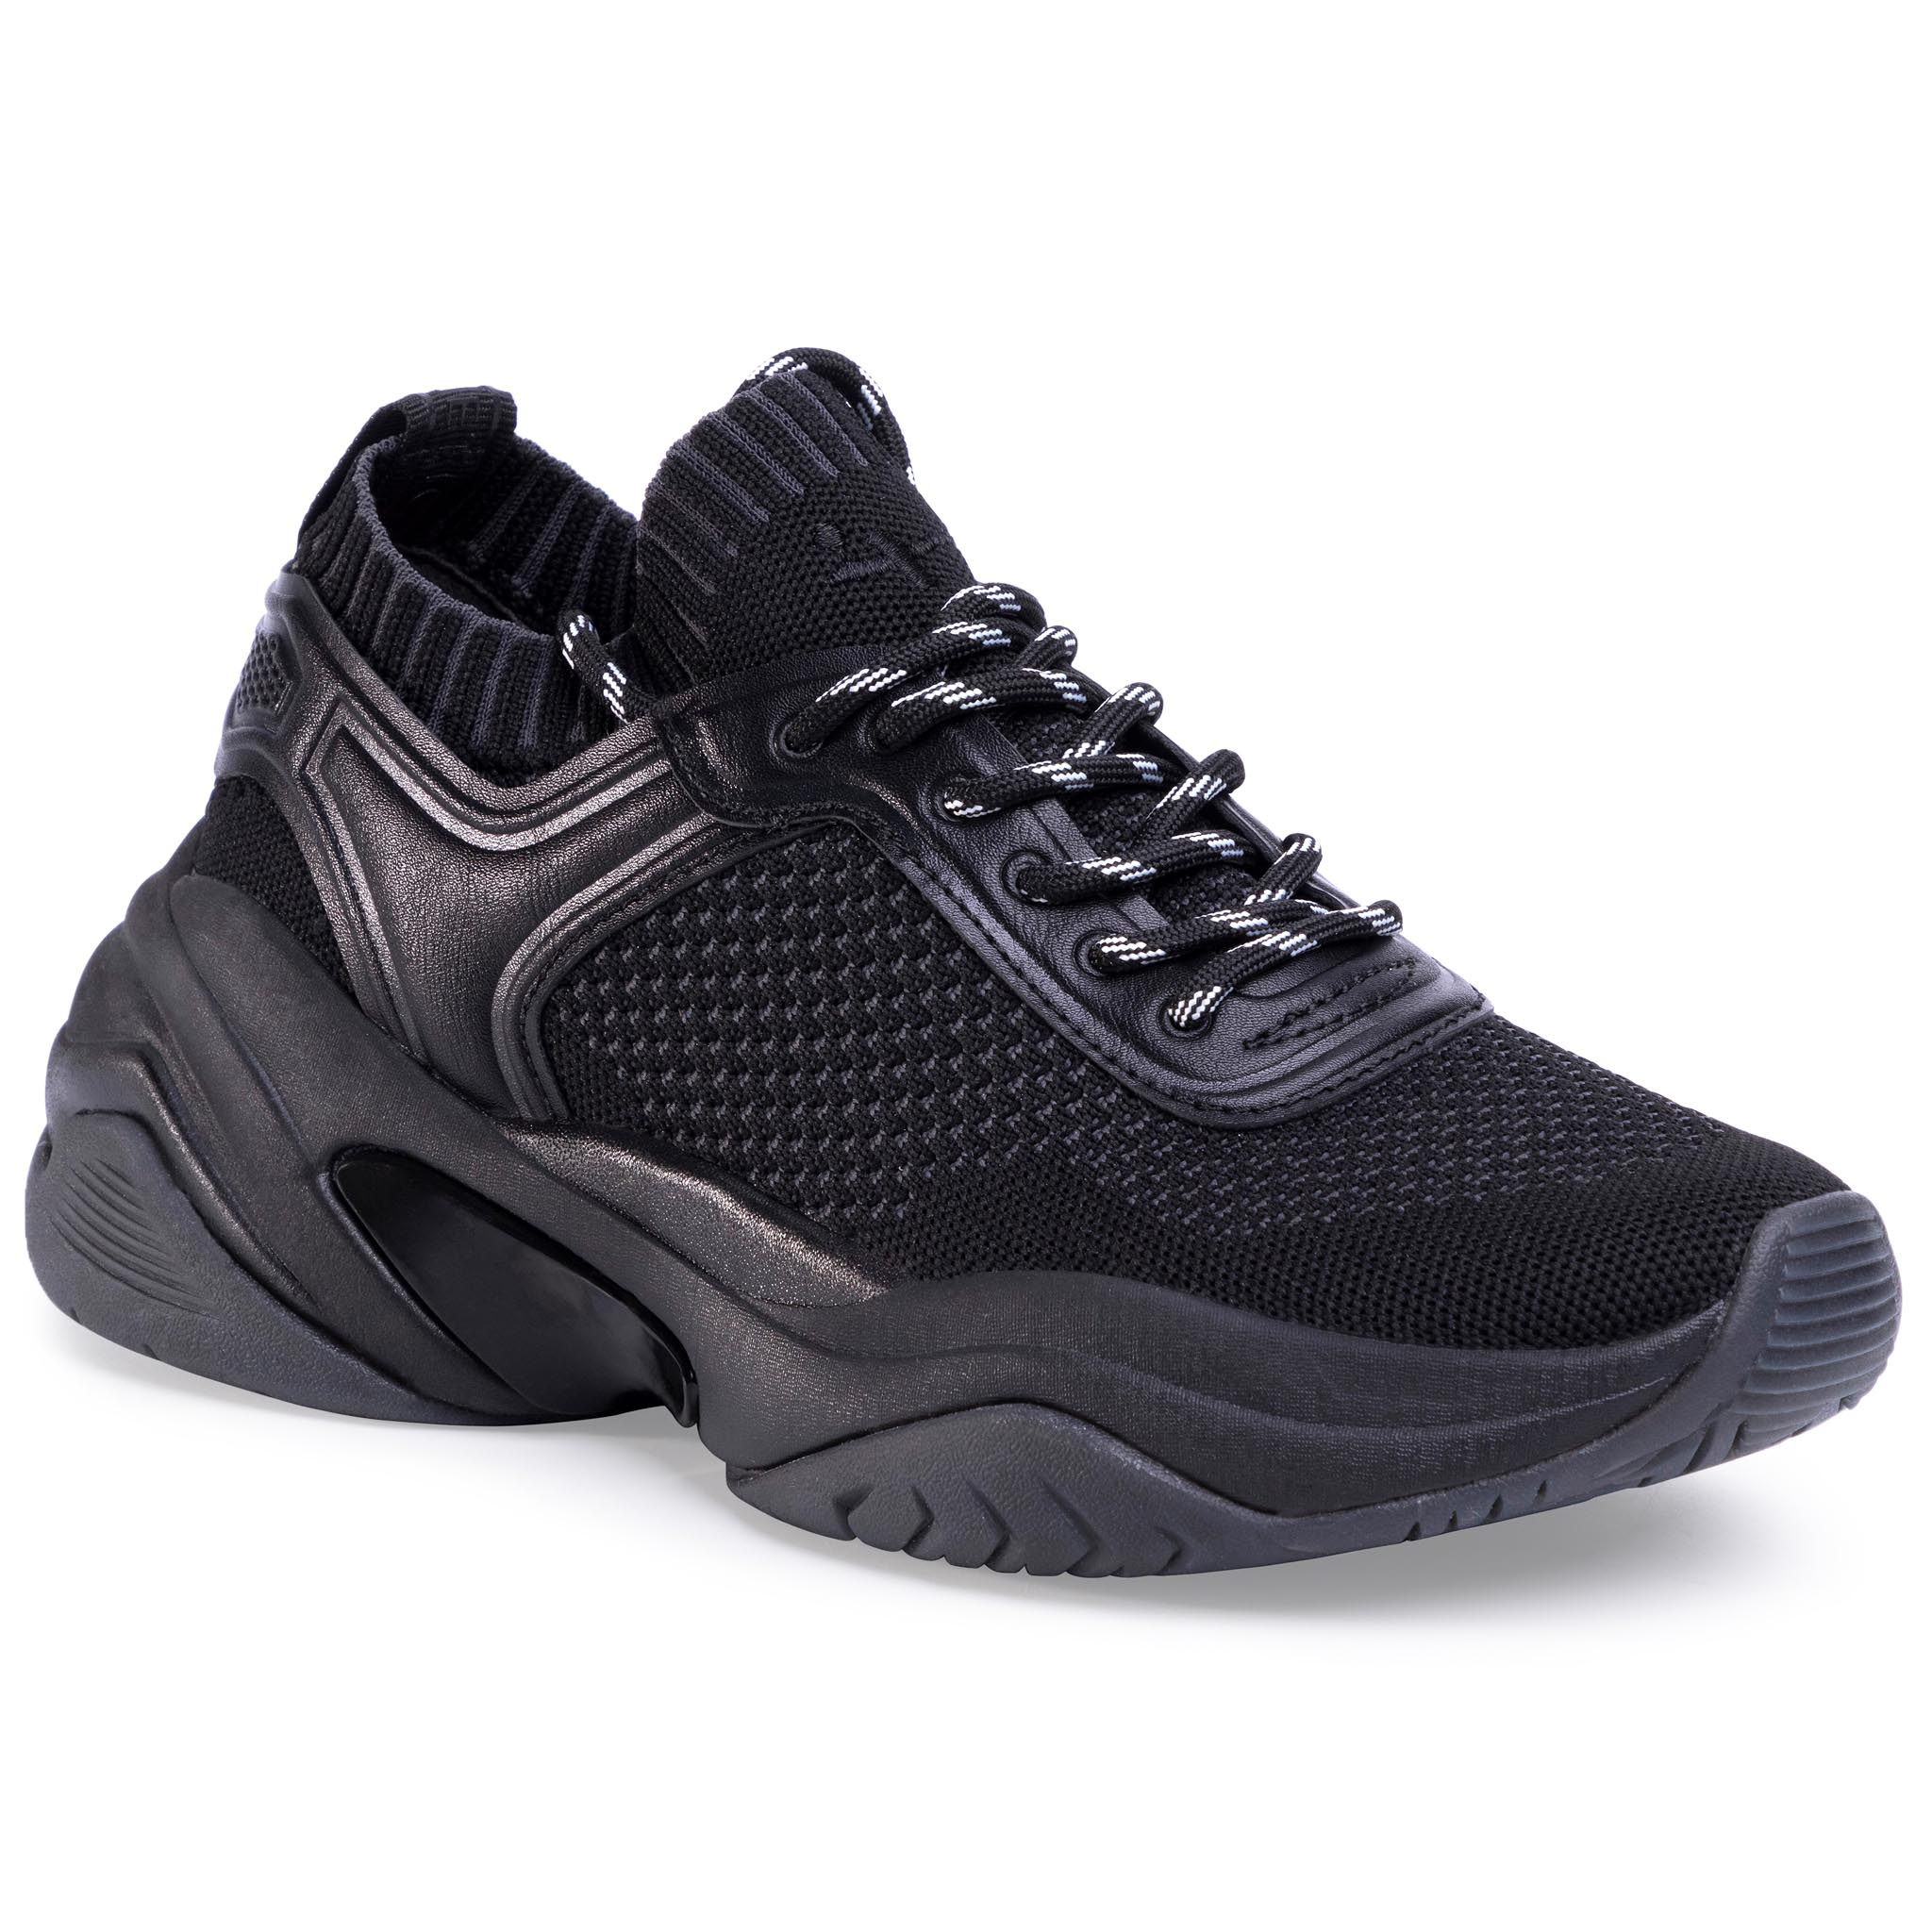 Sneakersy TAMARIS - 1-23736-24 Black Uni 007